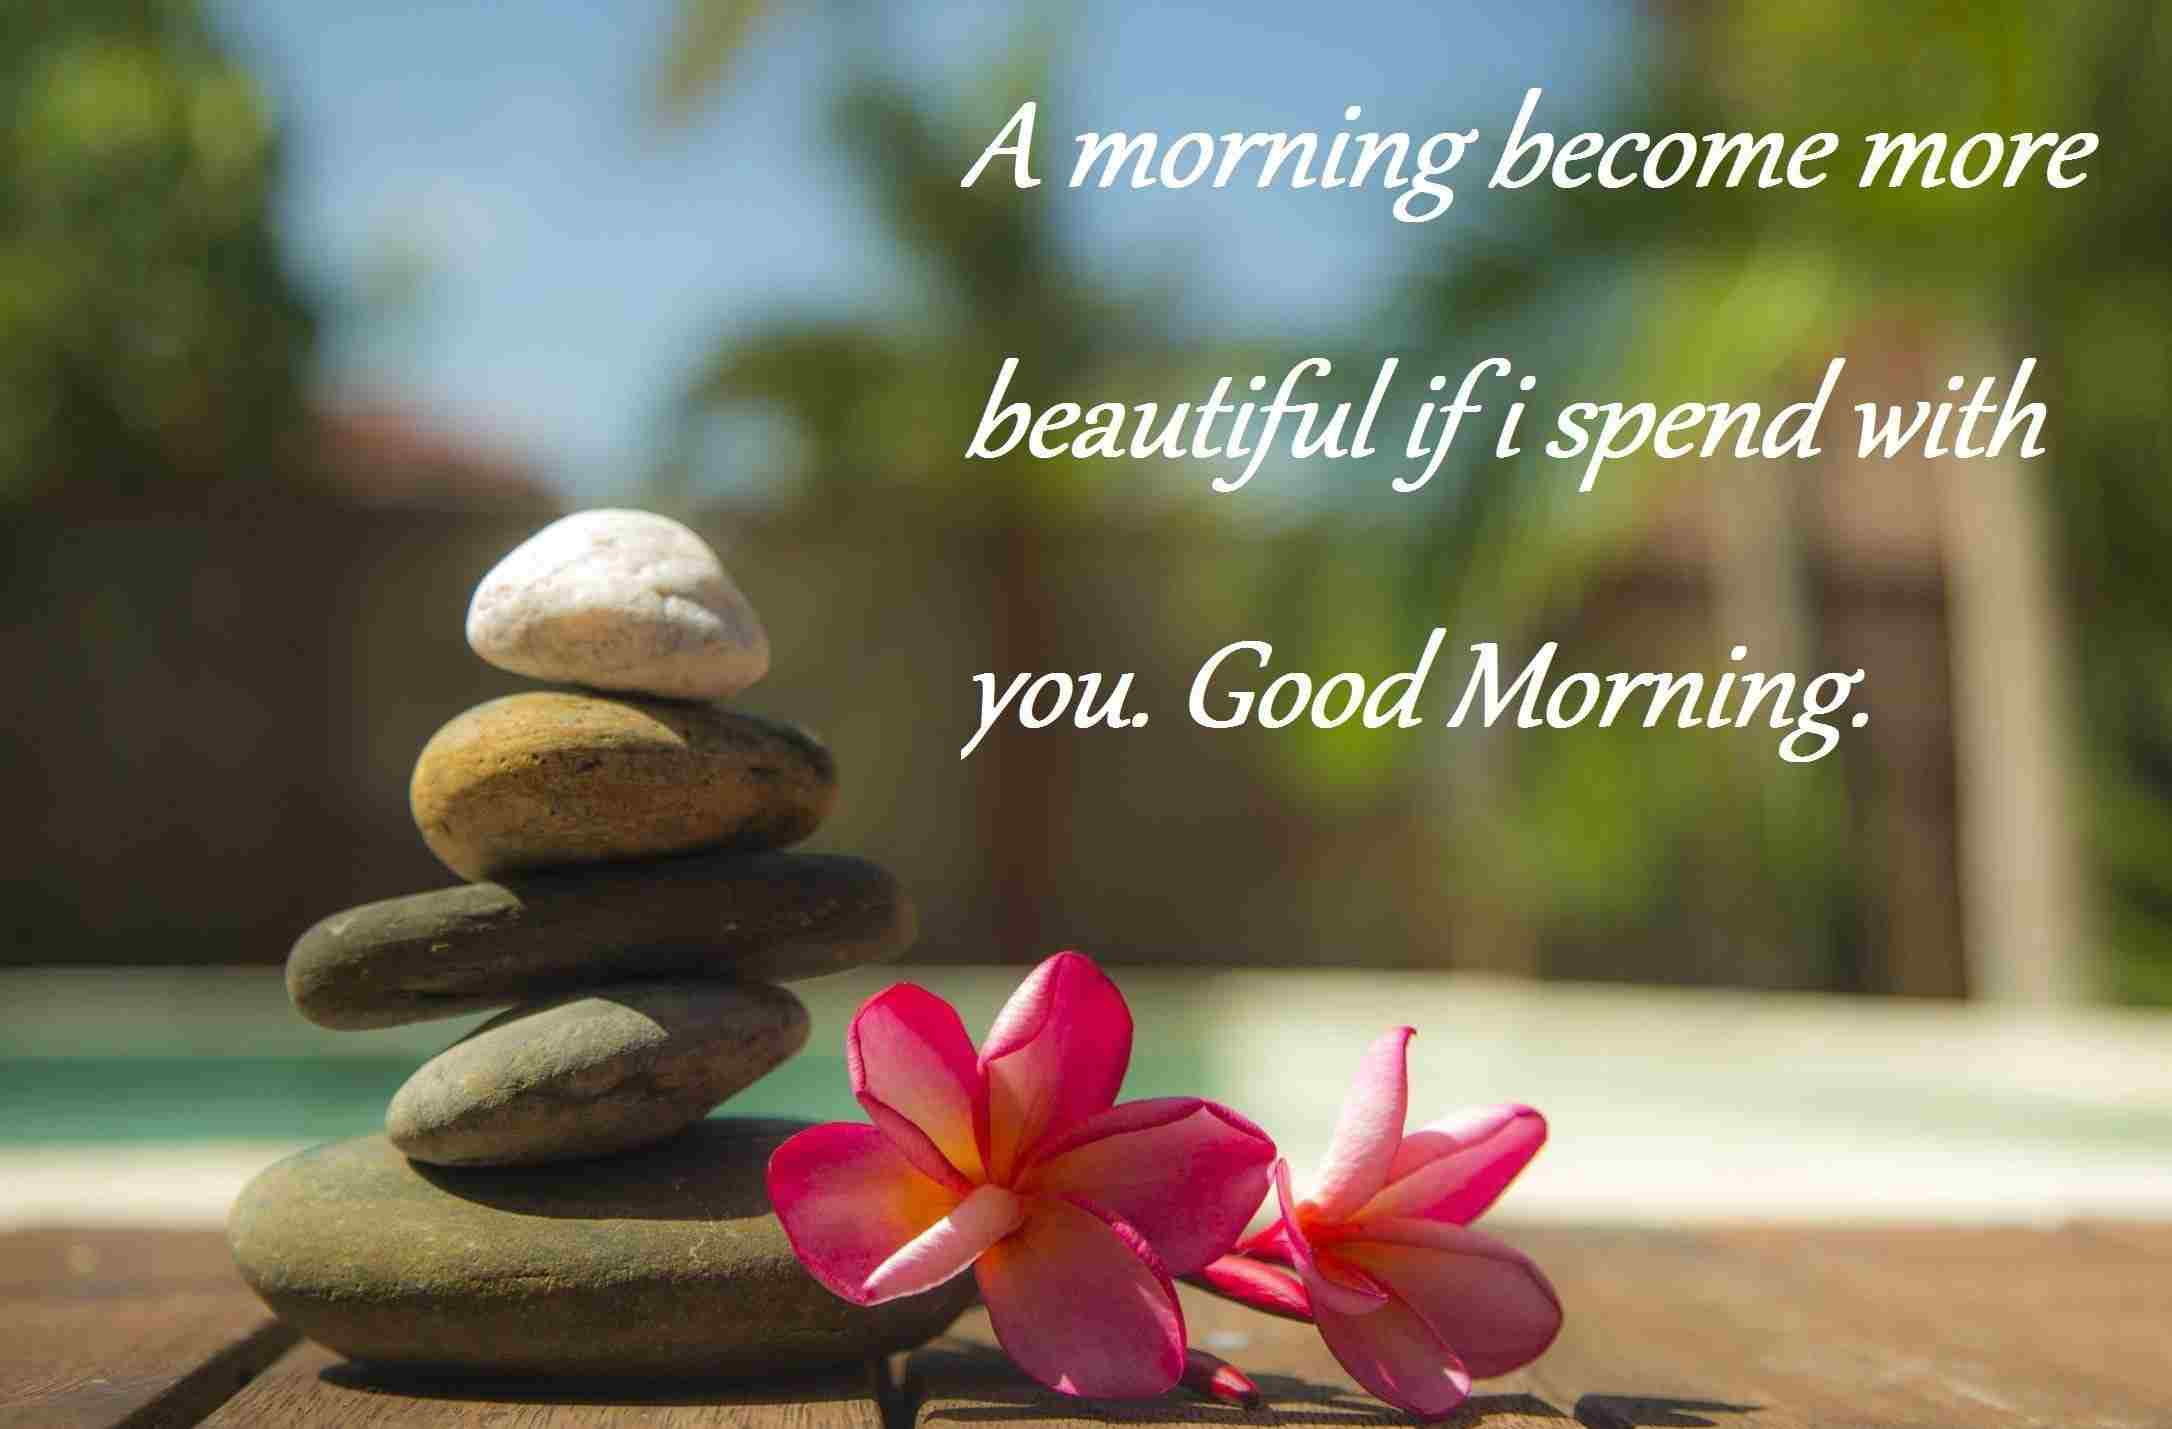 55 Good Morning Messages Images Pictures List Bark